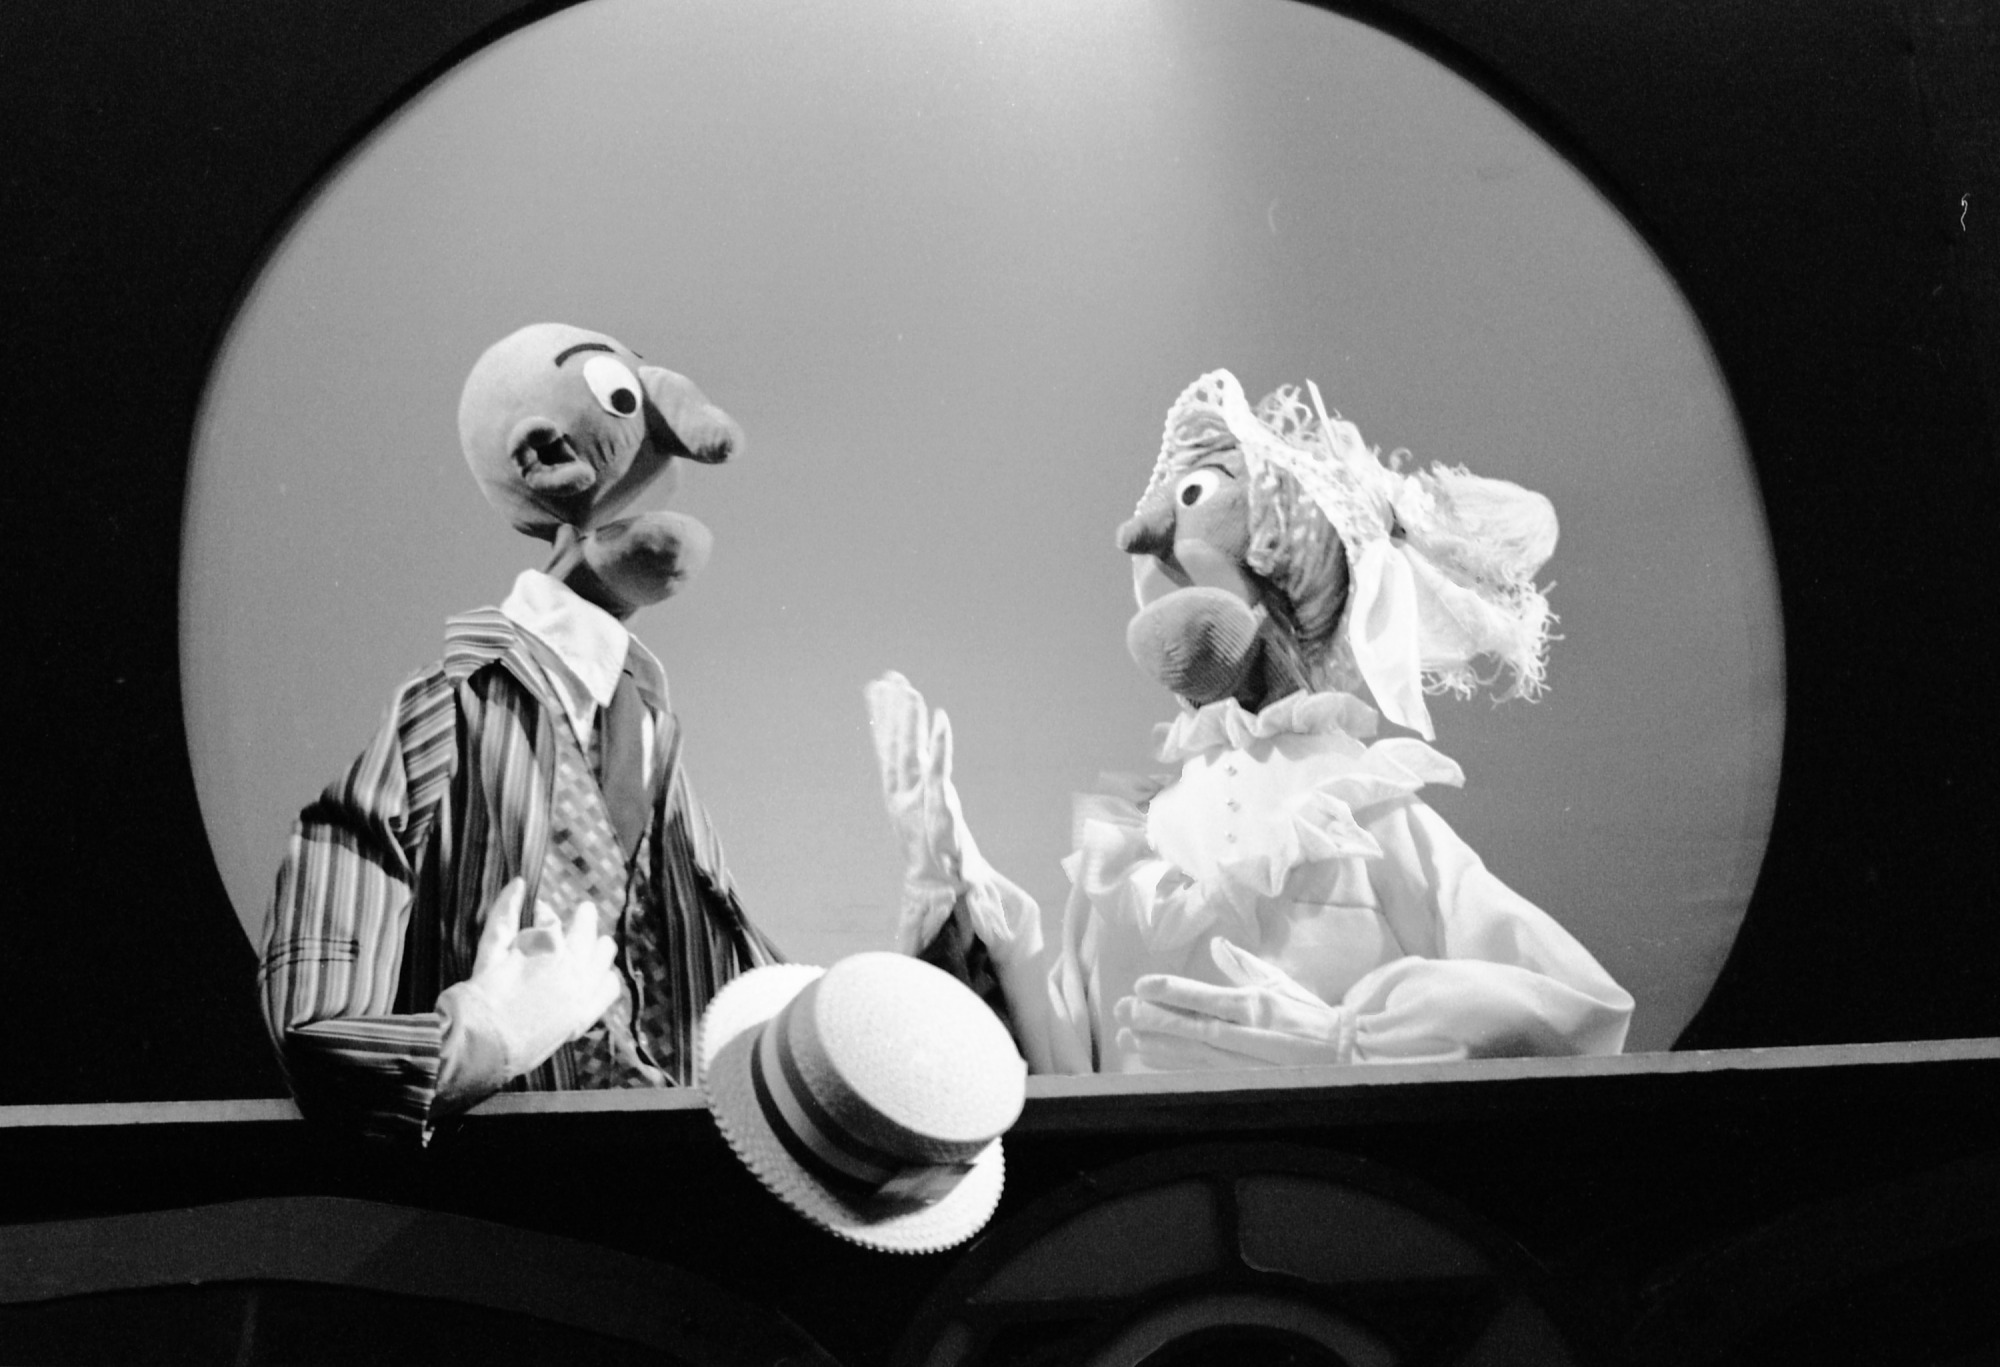 Puppet Theater, 1972, Smithsonian Institution Archives, SIA Acc. 11-009 [72-8376-16].